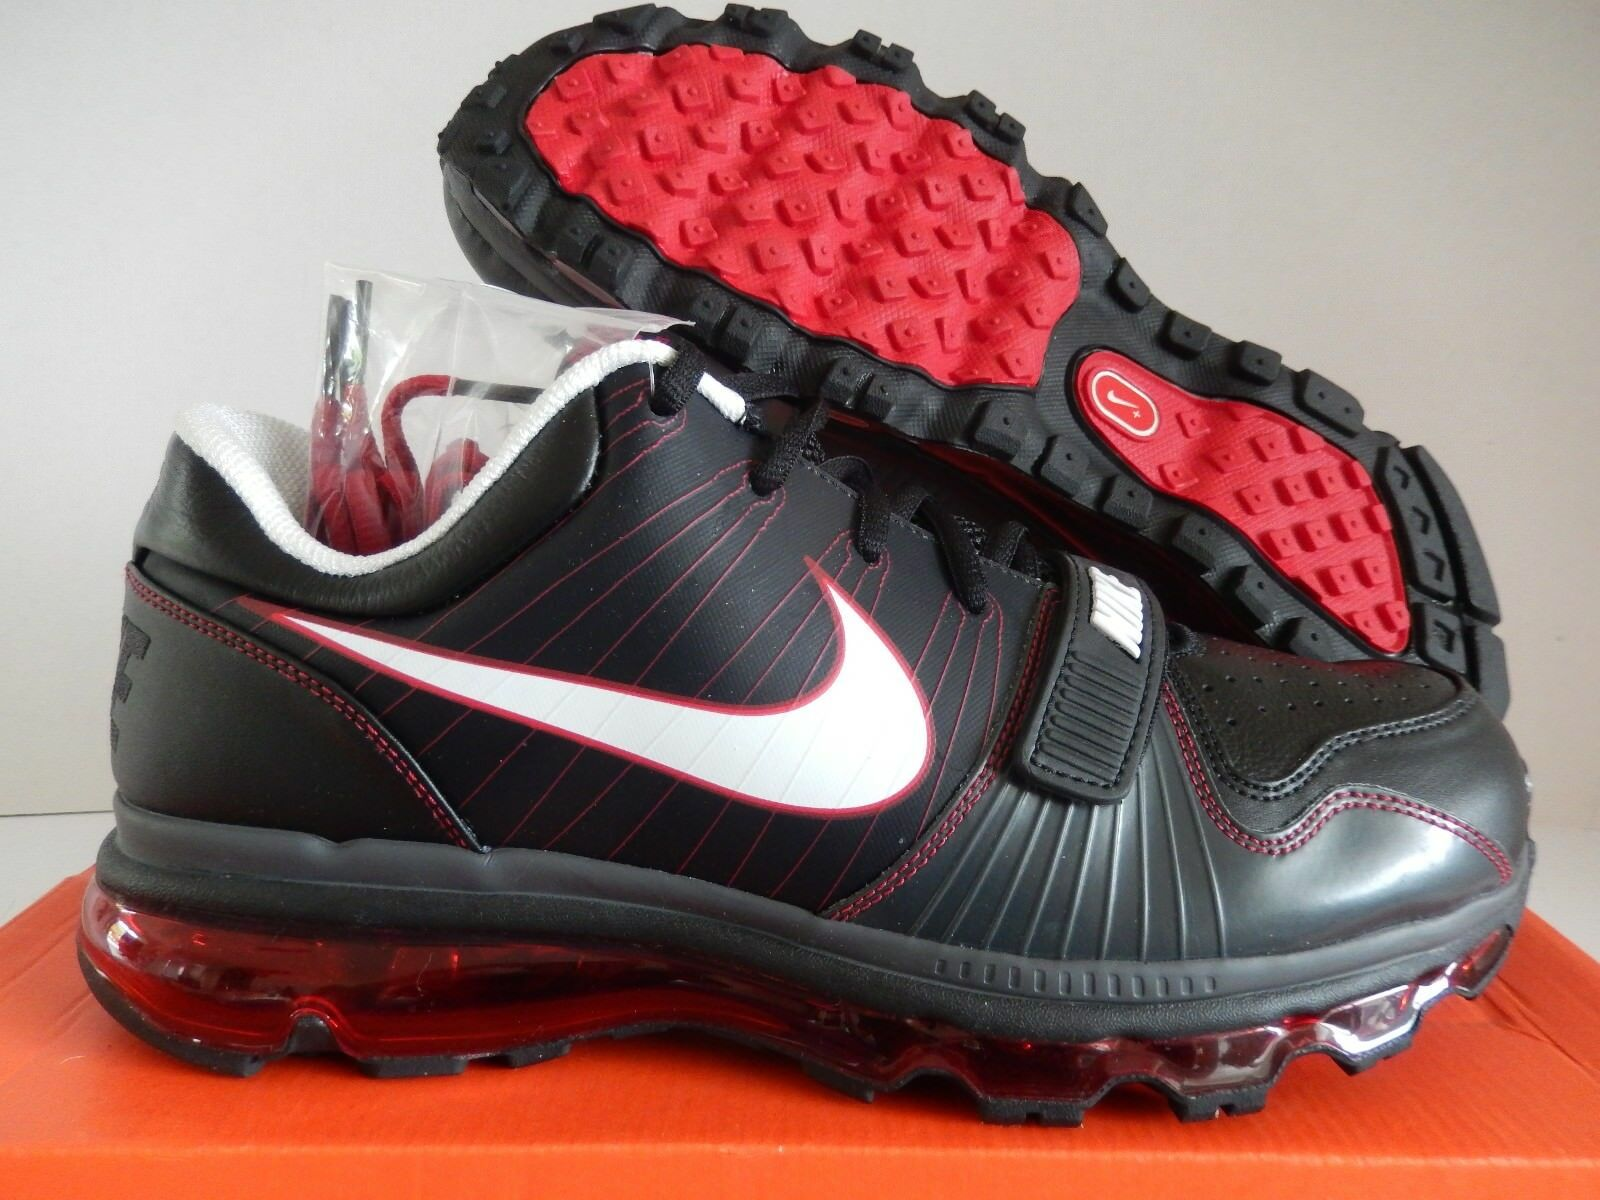 NIKE AIR MAX TR 1 + LOW 2009 2013 2017 360 BLACK-VAR RED SZ 12 [409717-016]